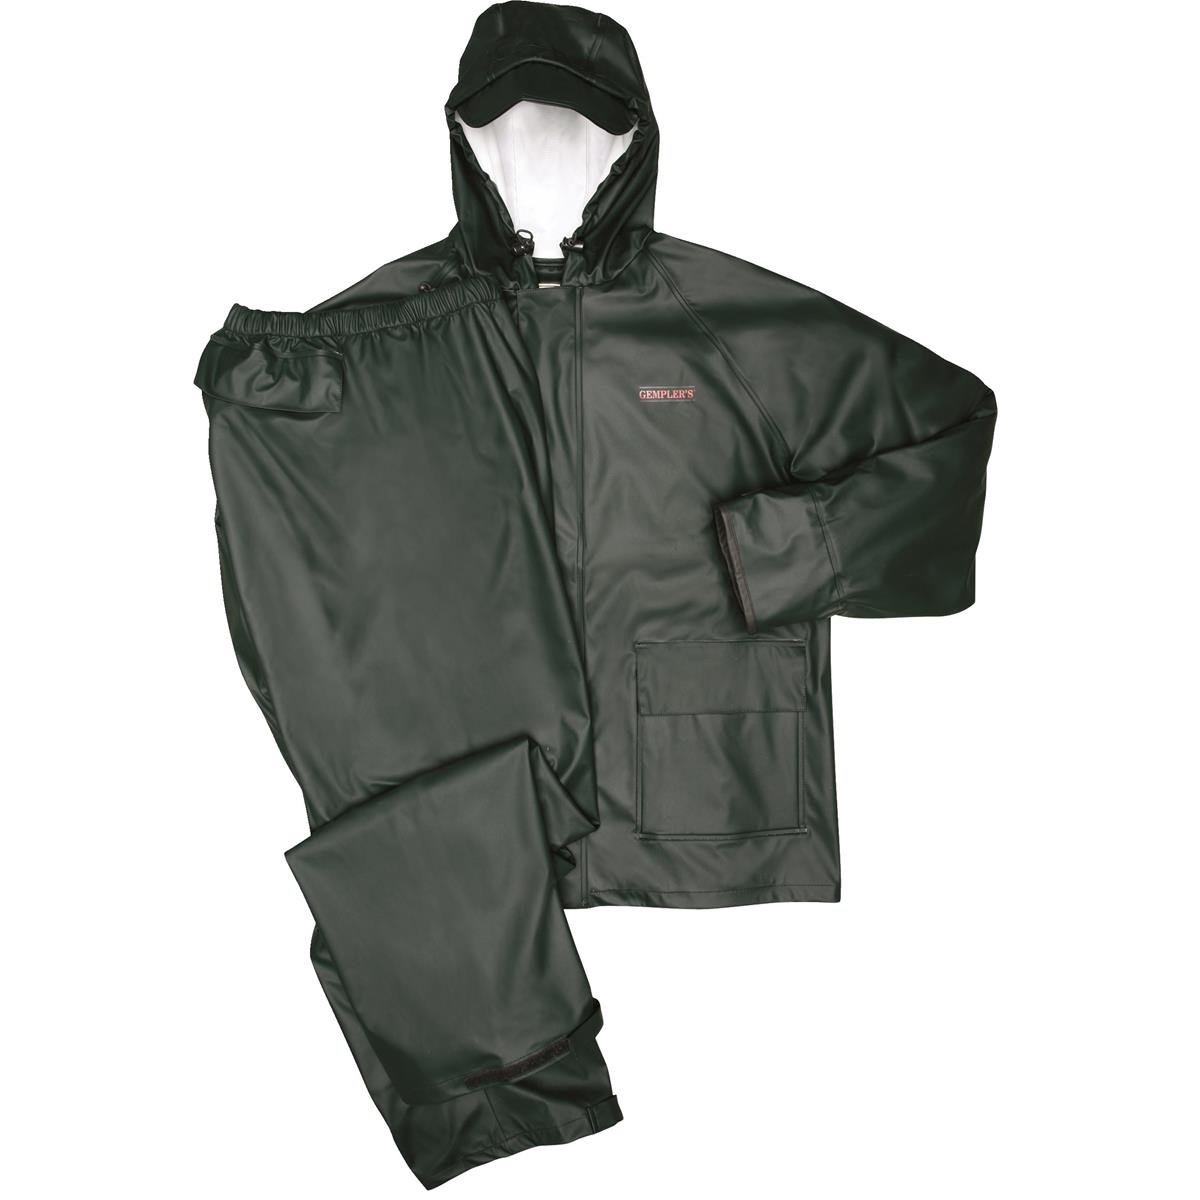 GEMPLER'S Stretch-Knit Rainsuit Jacket and Pants With Neoprene Cuffs & Vented Back, Size Medium